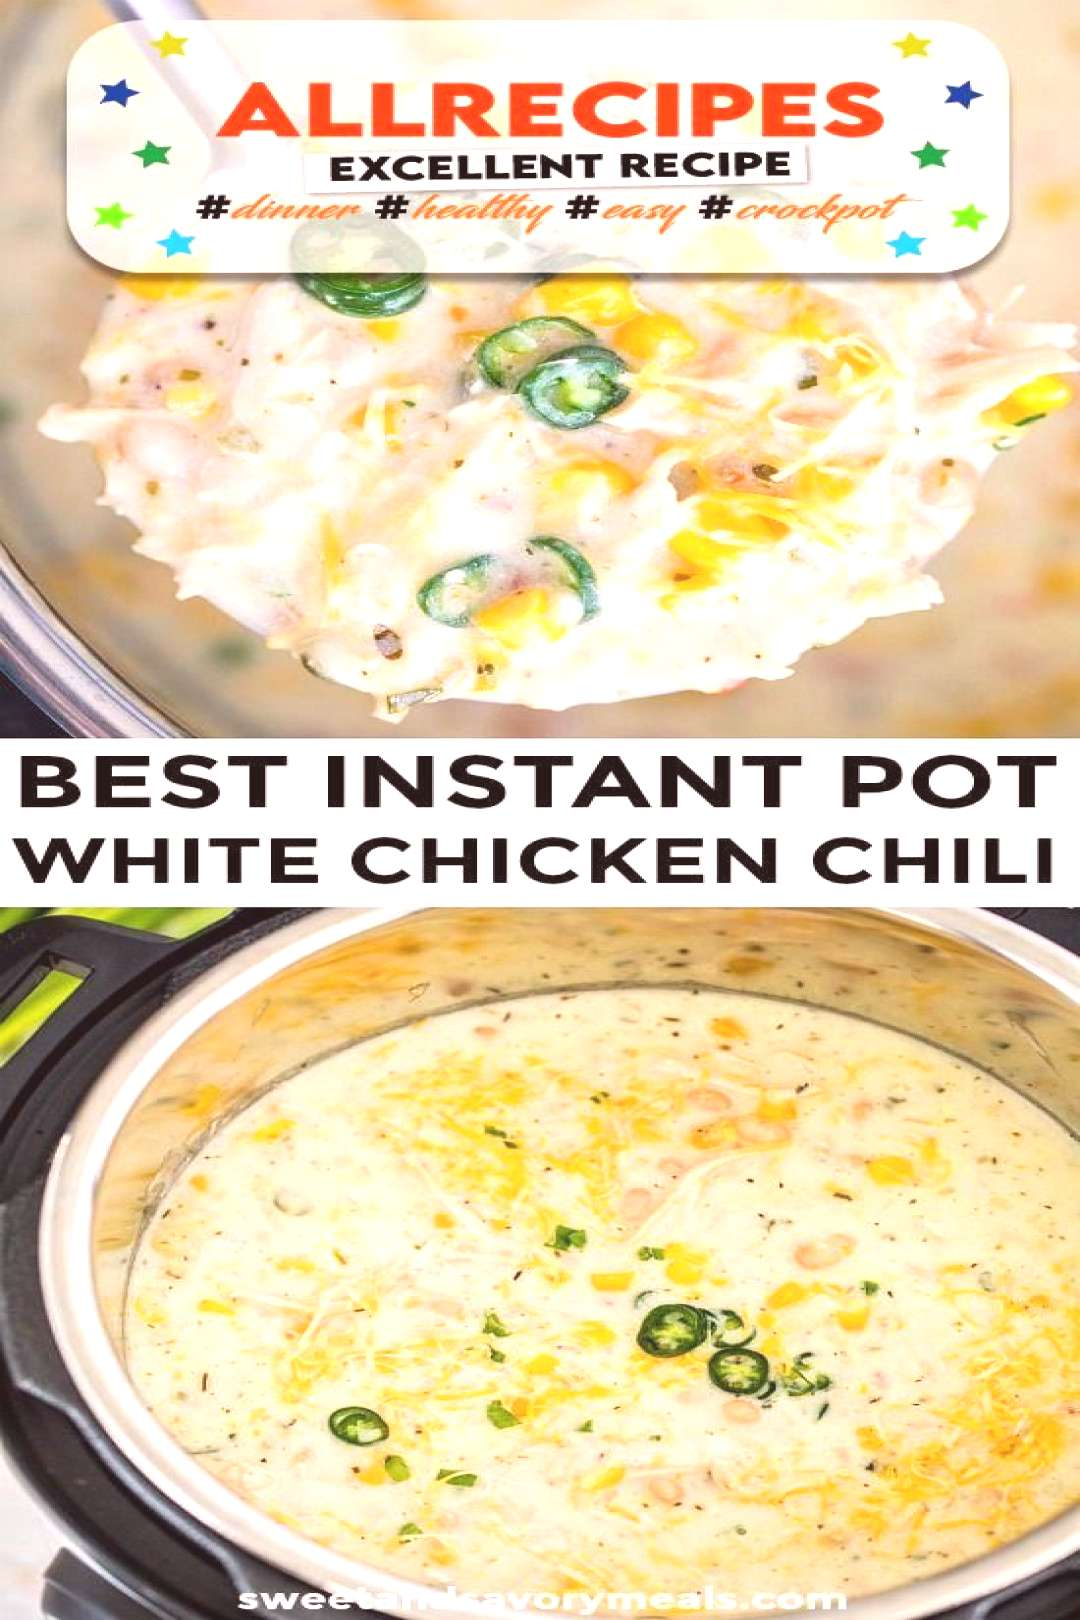 Instant Pot White Chicken Chili  - Sweet and Savory Meals - - Instant Pot White Chicken Chili is on